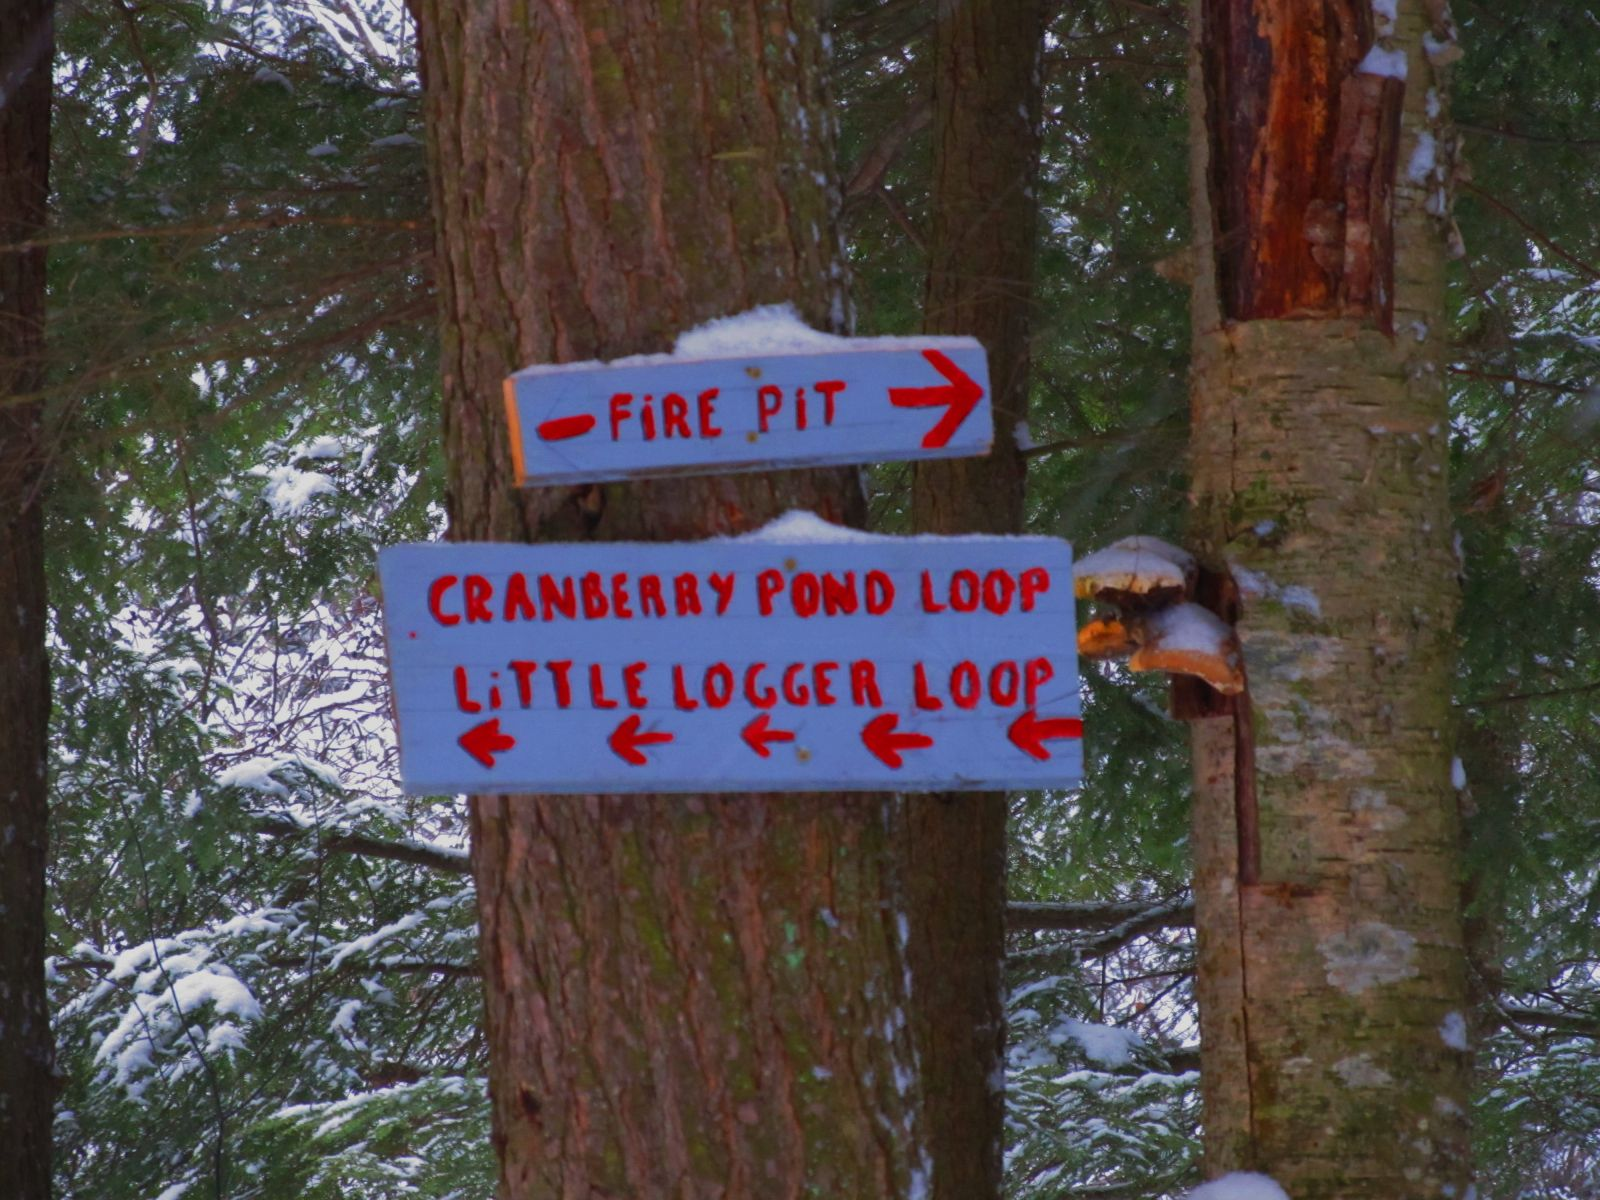 Intersection for Cranberry Pond, the Little Logger Trail or the firepit